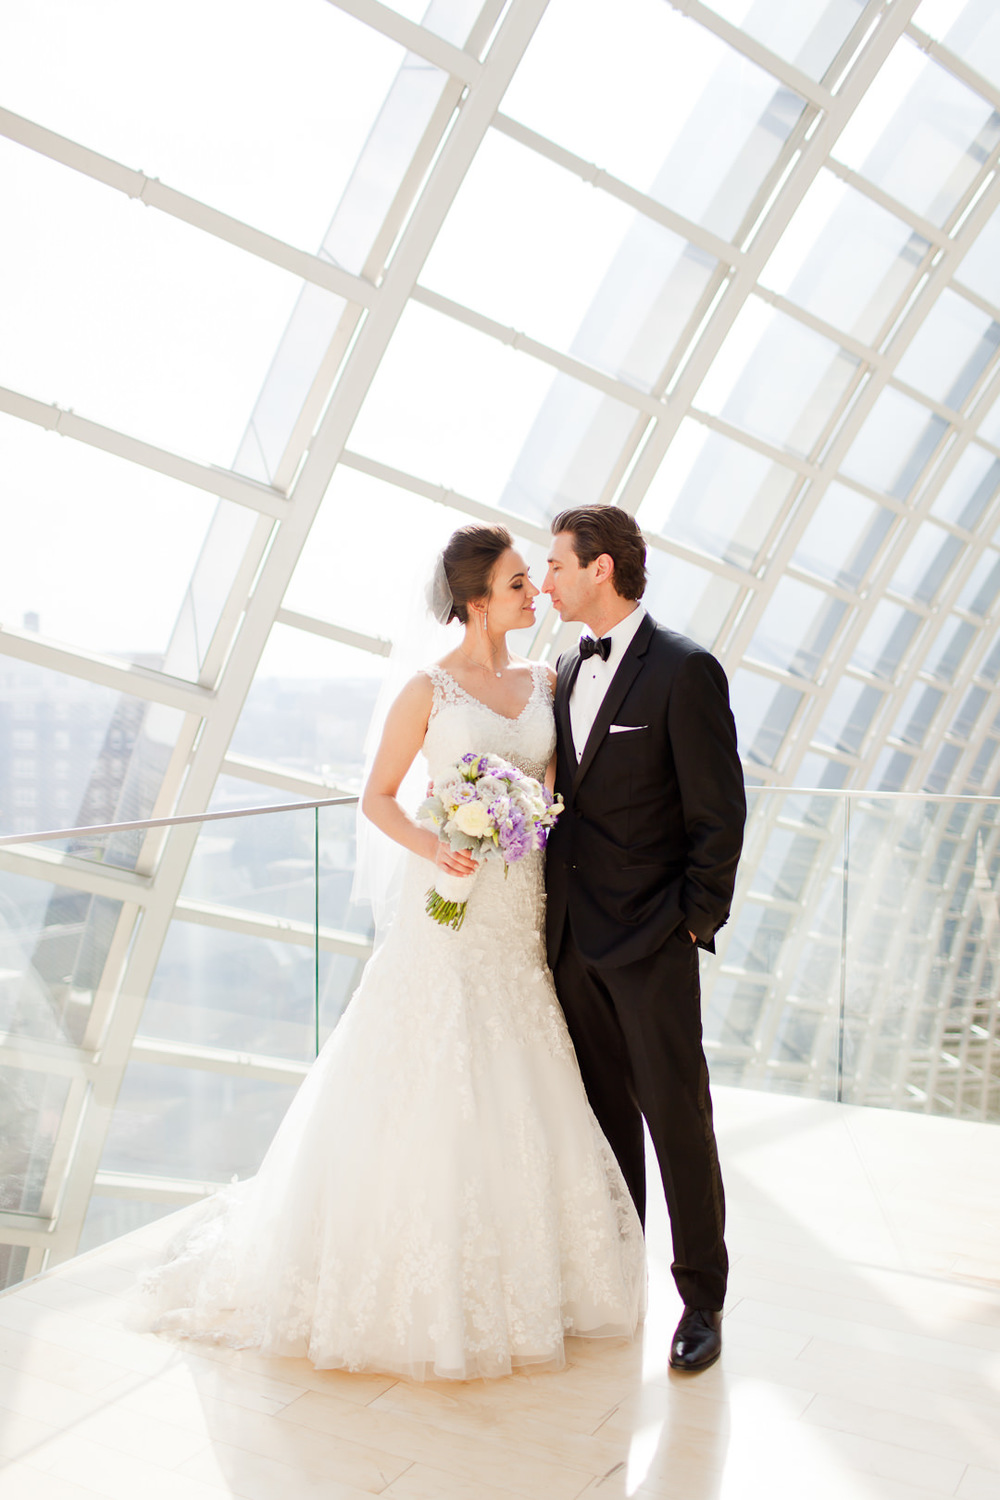 Melissa Kruse Photography - Katerina & Alex Hamilton Garden at The Kimmel Center Philadelphia Wedding-390.jpg